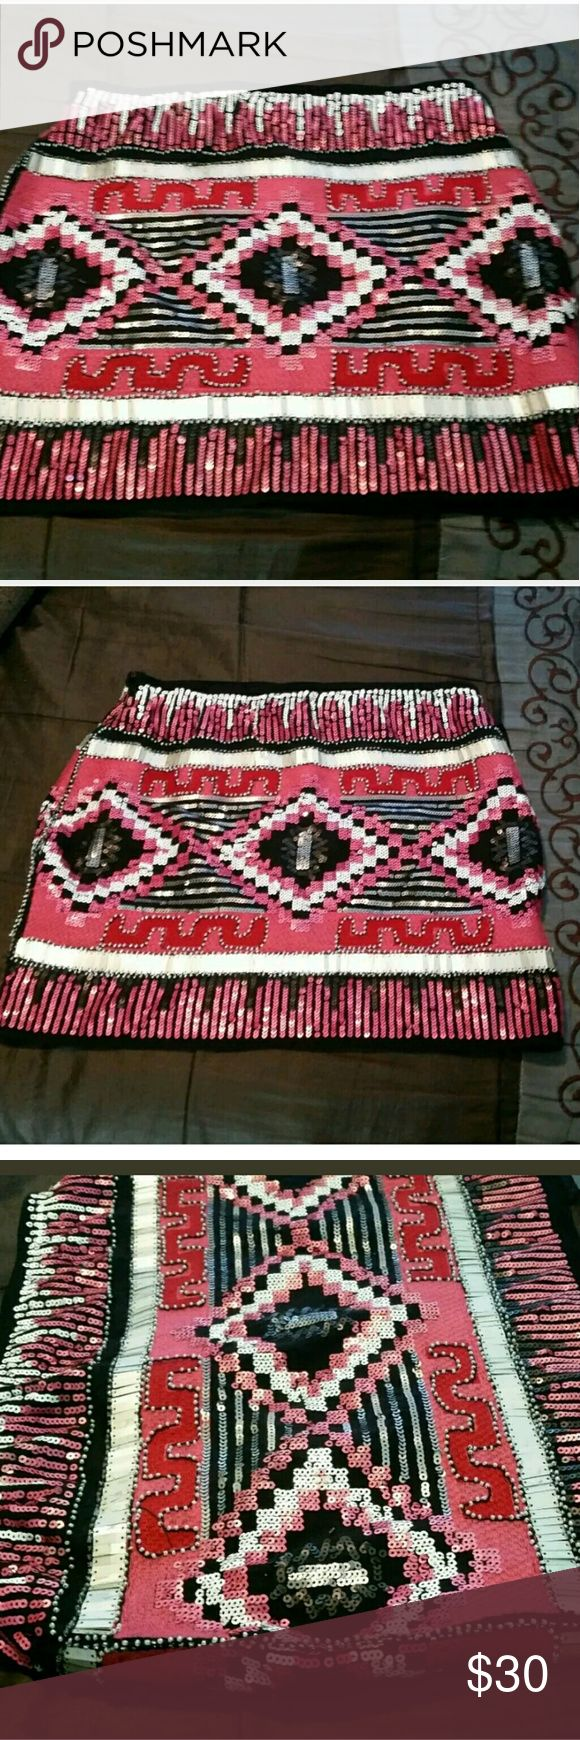 """NWT Forever 21 Fully Sequined Aztec Mini Skirt Forever 21 Womens Skirt Embellished Solid Sequin Aztec Boho Pull On Stretch Mini. Brand new with tags MSRP $45   Type: Skirt Style: Pull On Stretch Mini - Solid Embellishments   Brand: Forever 21 Size: Medium Material: Shell - 95% Polyester 5% Spandex / Lining - 100% Polyester Color: Black Pink Red Multicolor Measurements: Waist - 30"""" / Hips - 36"""" / Length - 30"""" Condition: New with tags  Country of Manufacturer: China Stock Number: 0001 Forever…"""